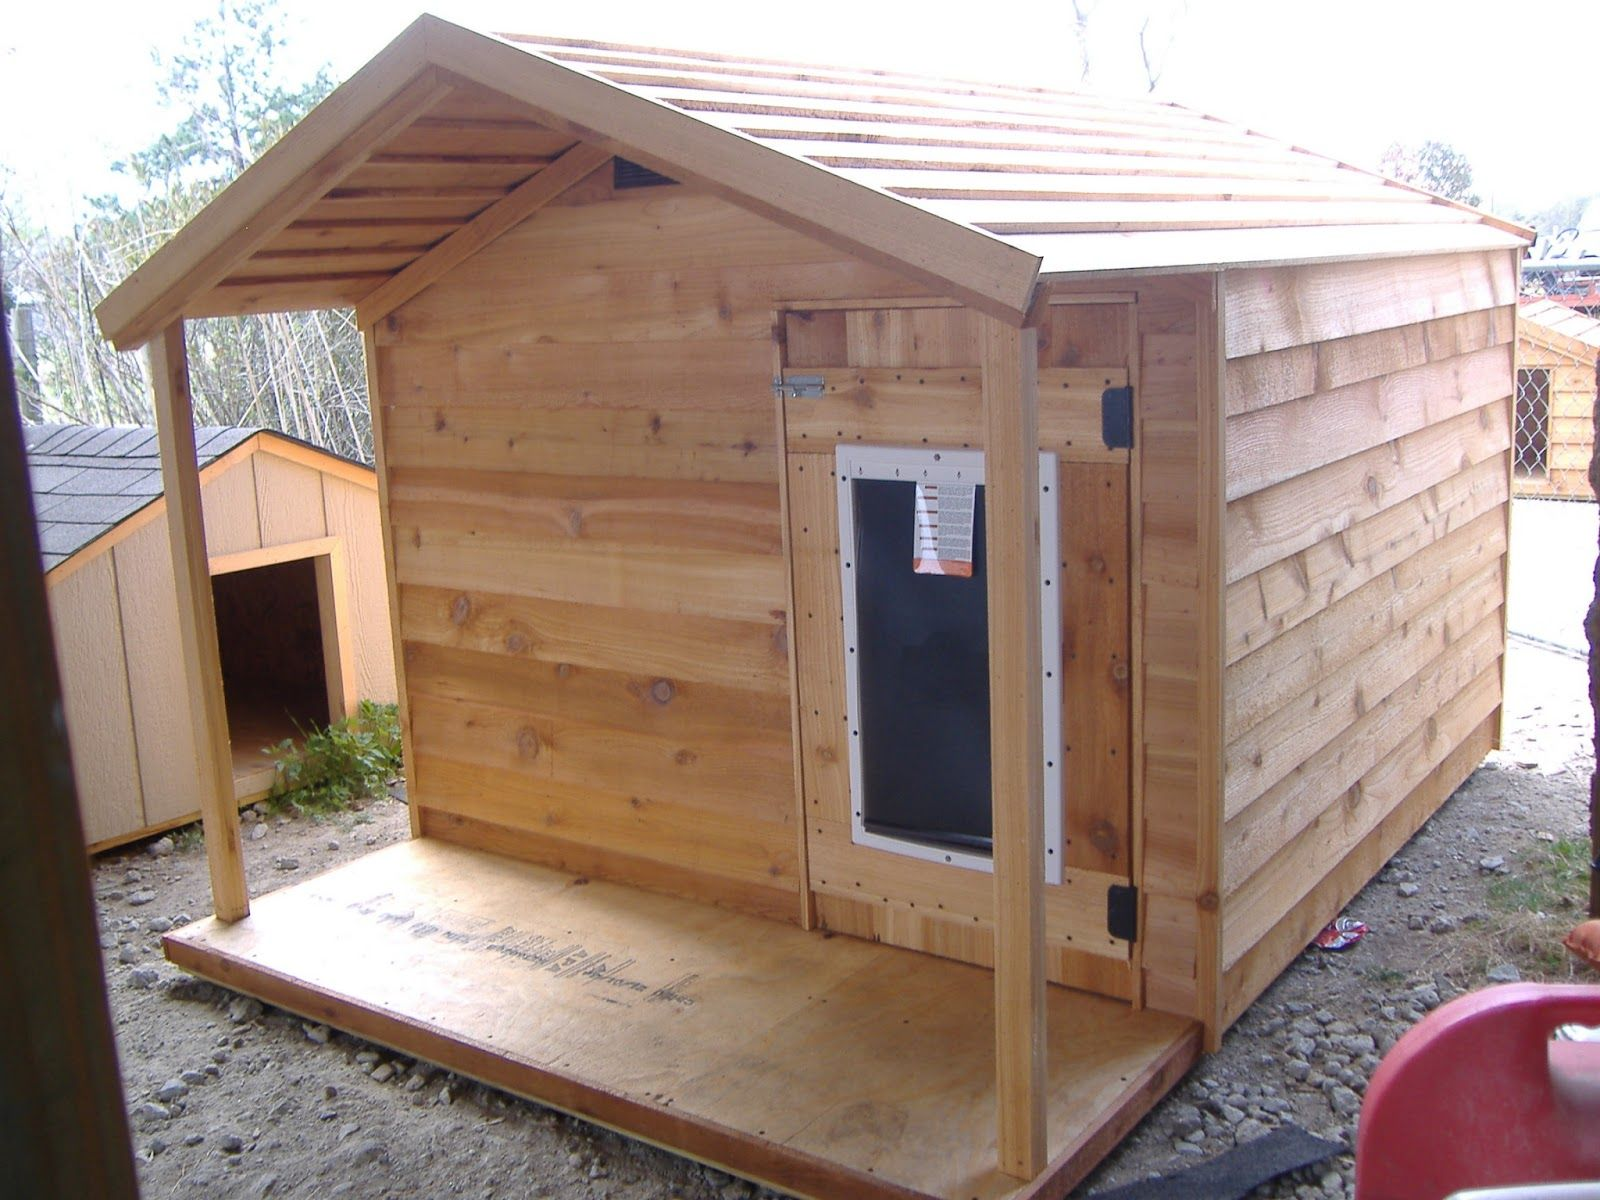 25 best ideas about insulated dog houses on pinterest Custom build a house online